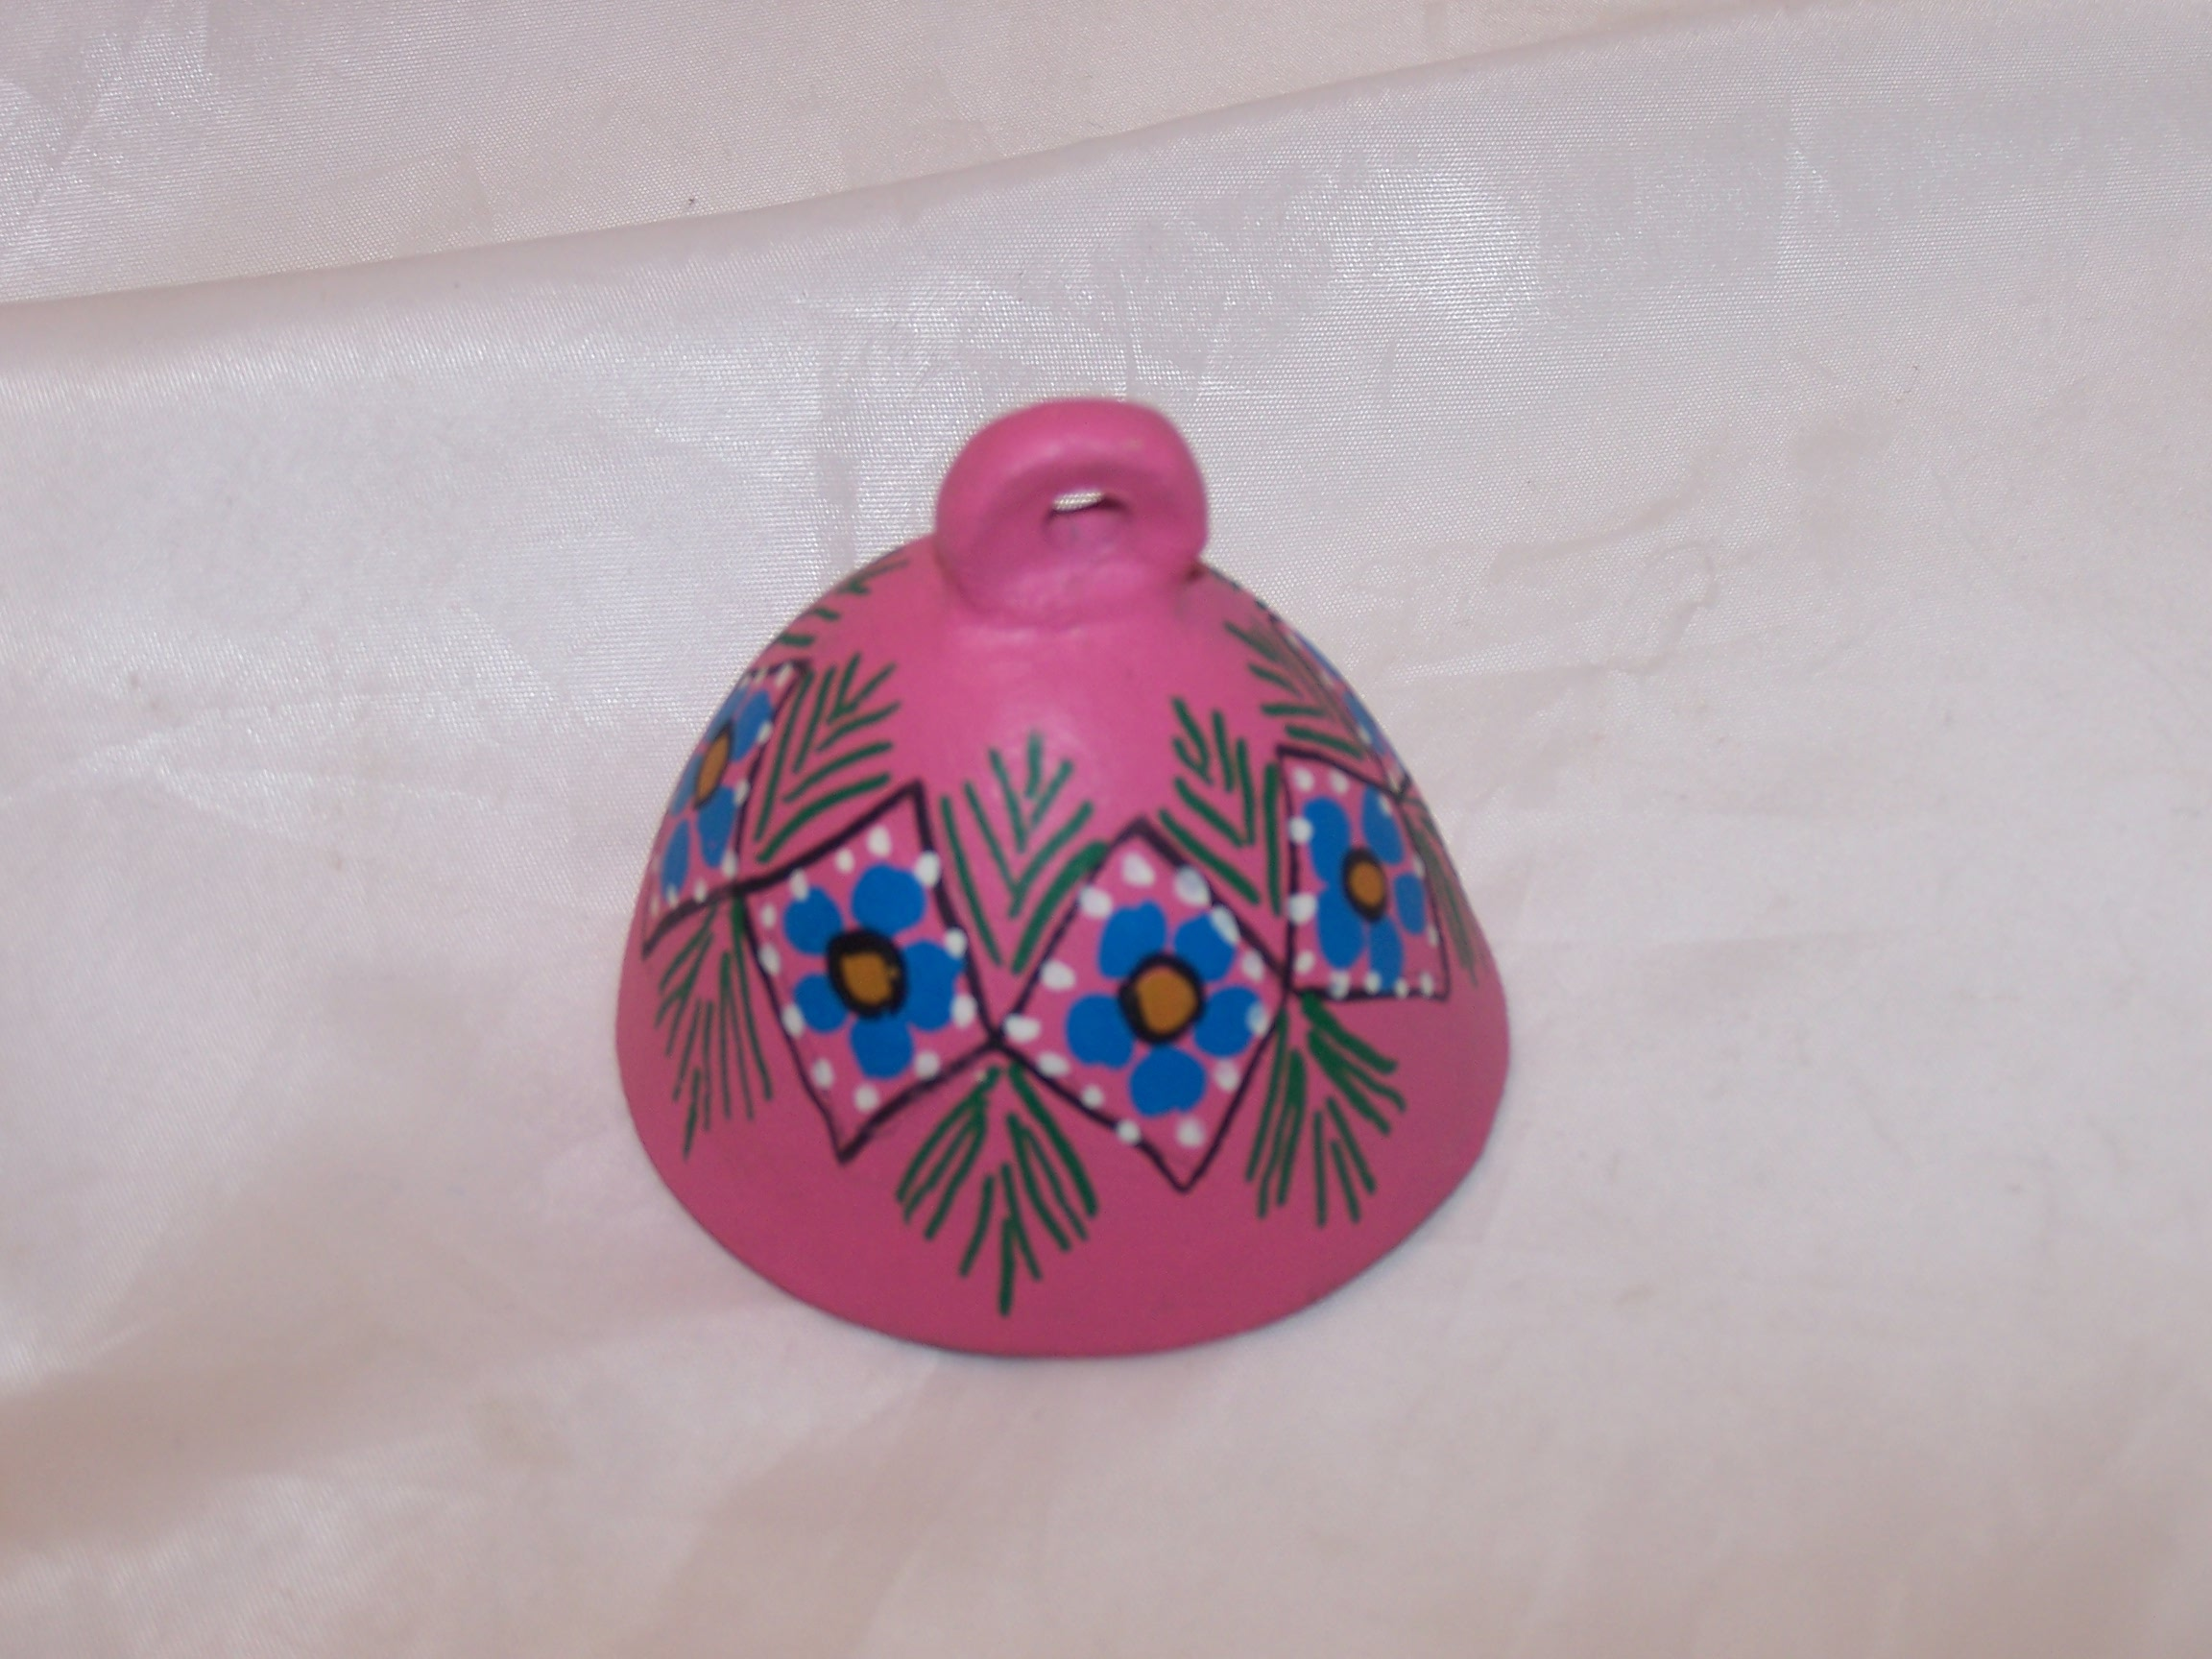 Image 2 of Floral Clay Bell, Oaxaca, Mexico, Hand Crafted, Painted